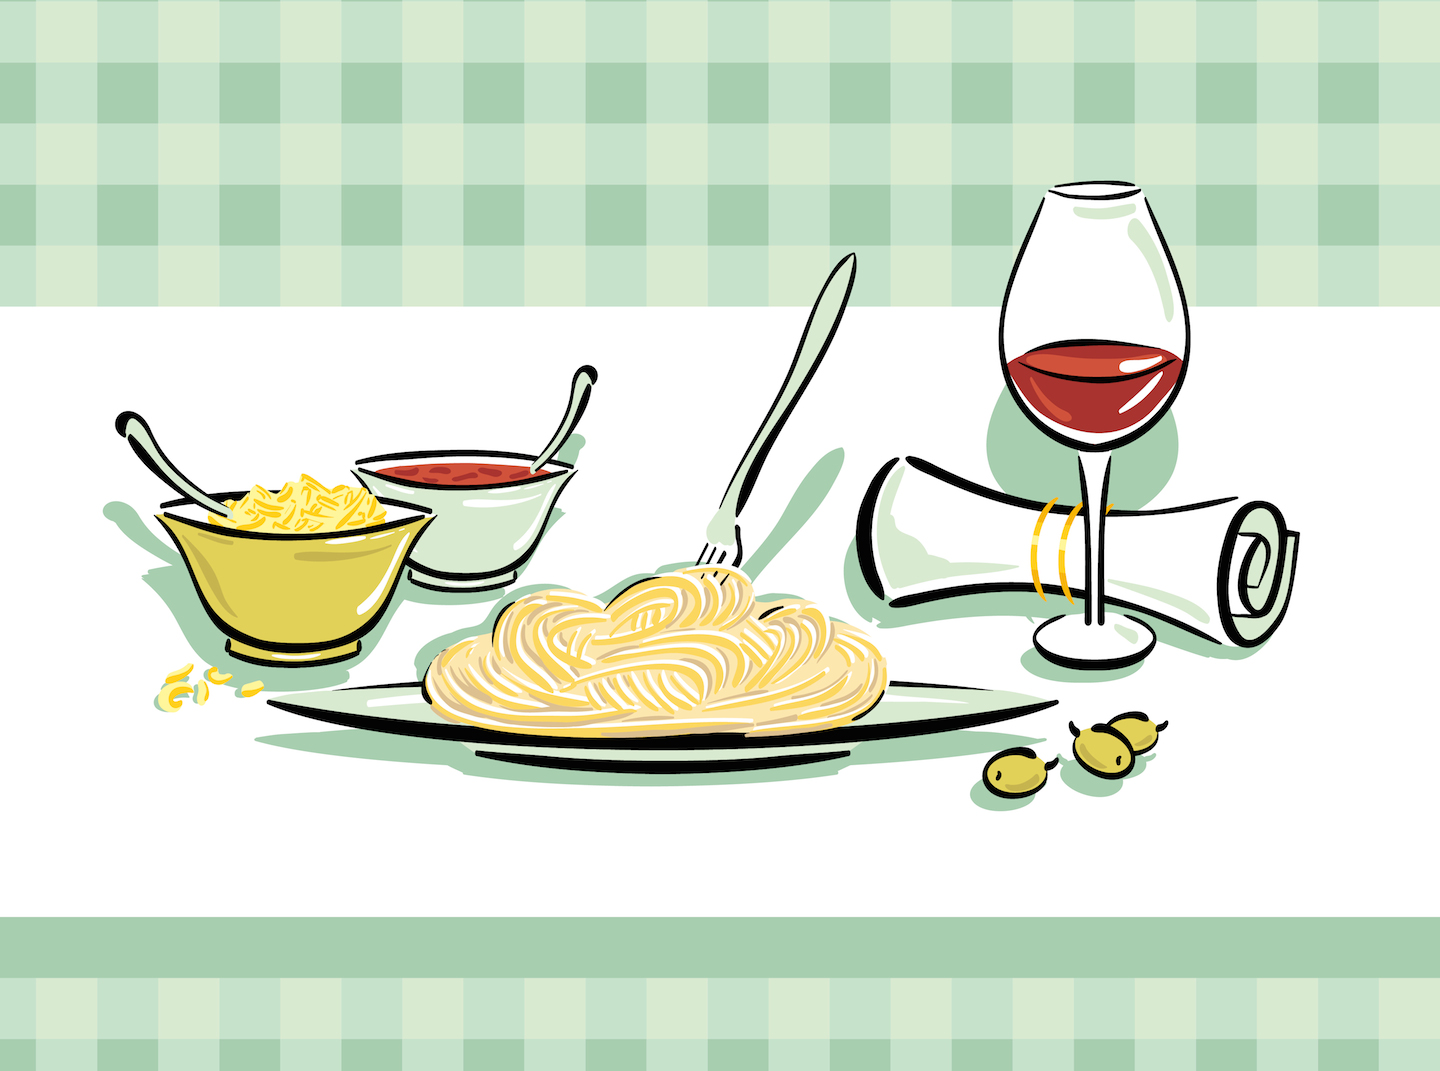 Wine + pasta = happiest meal ever